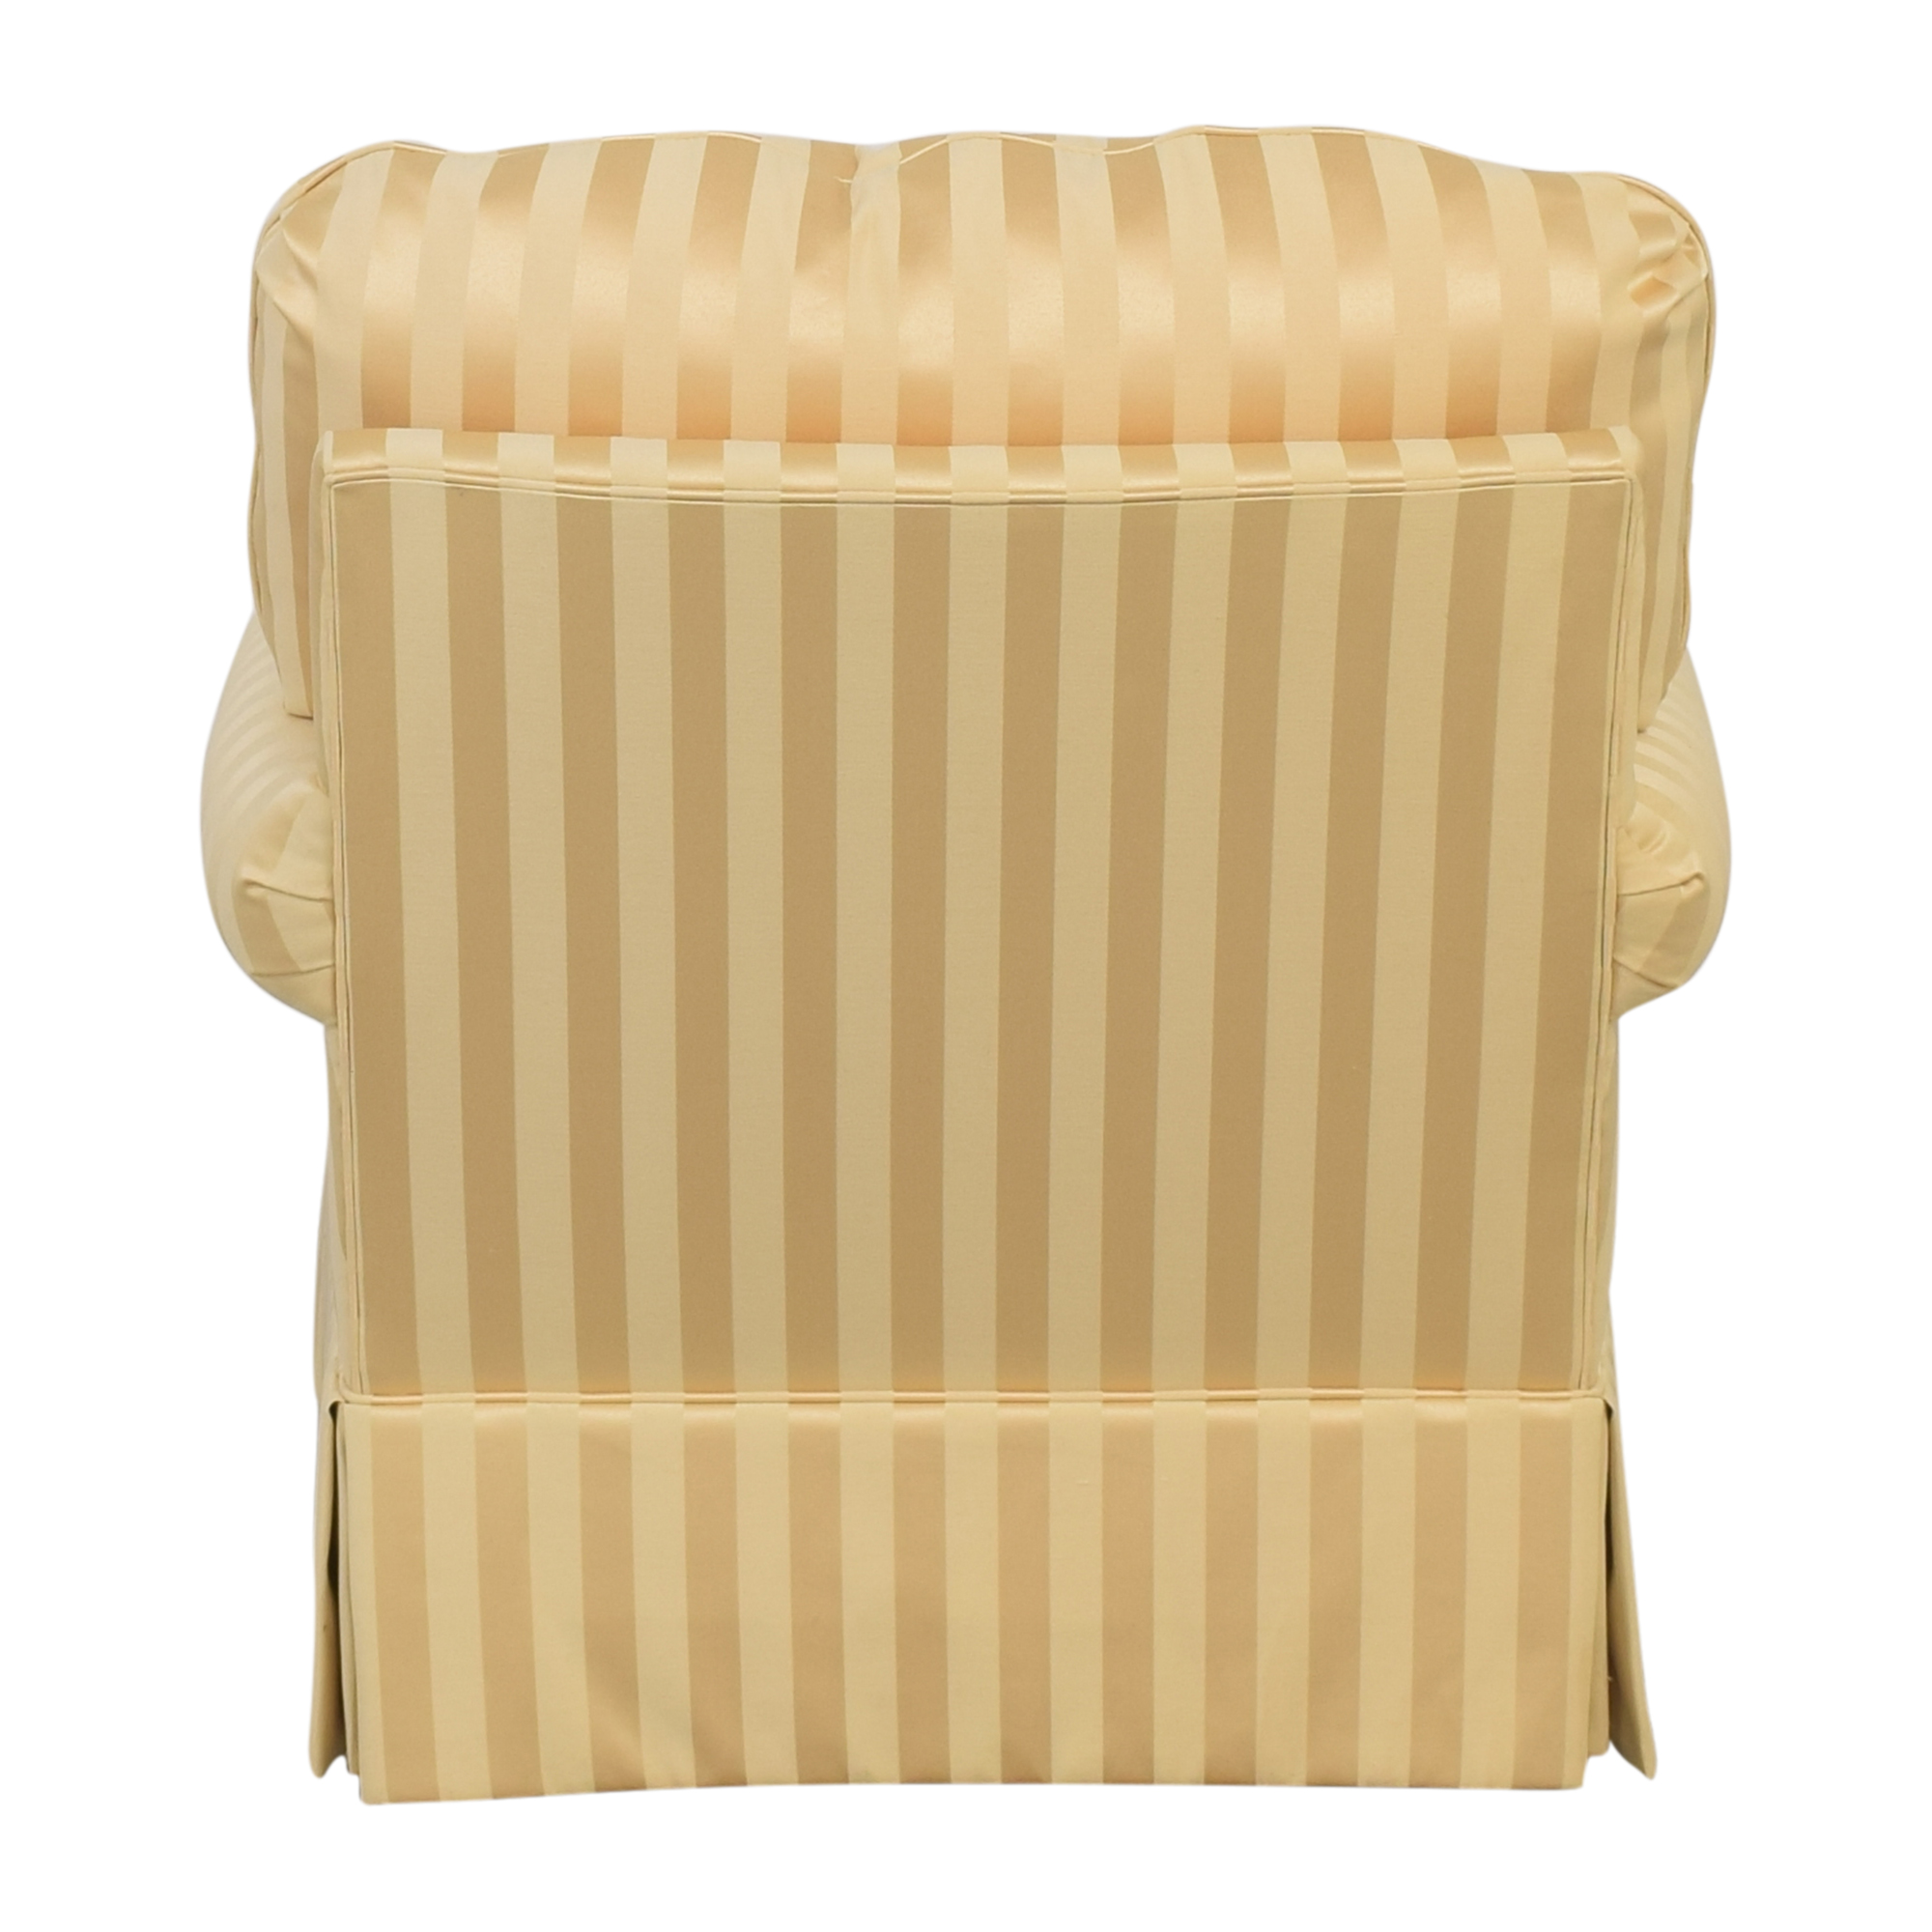 Thomasville Stripe Accent Chair / Chairs